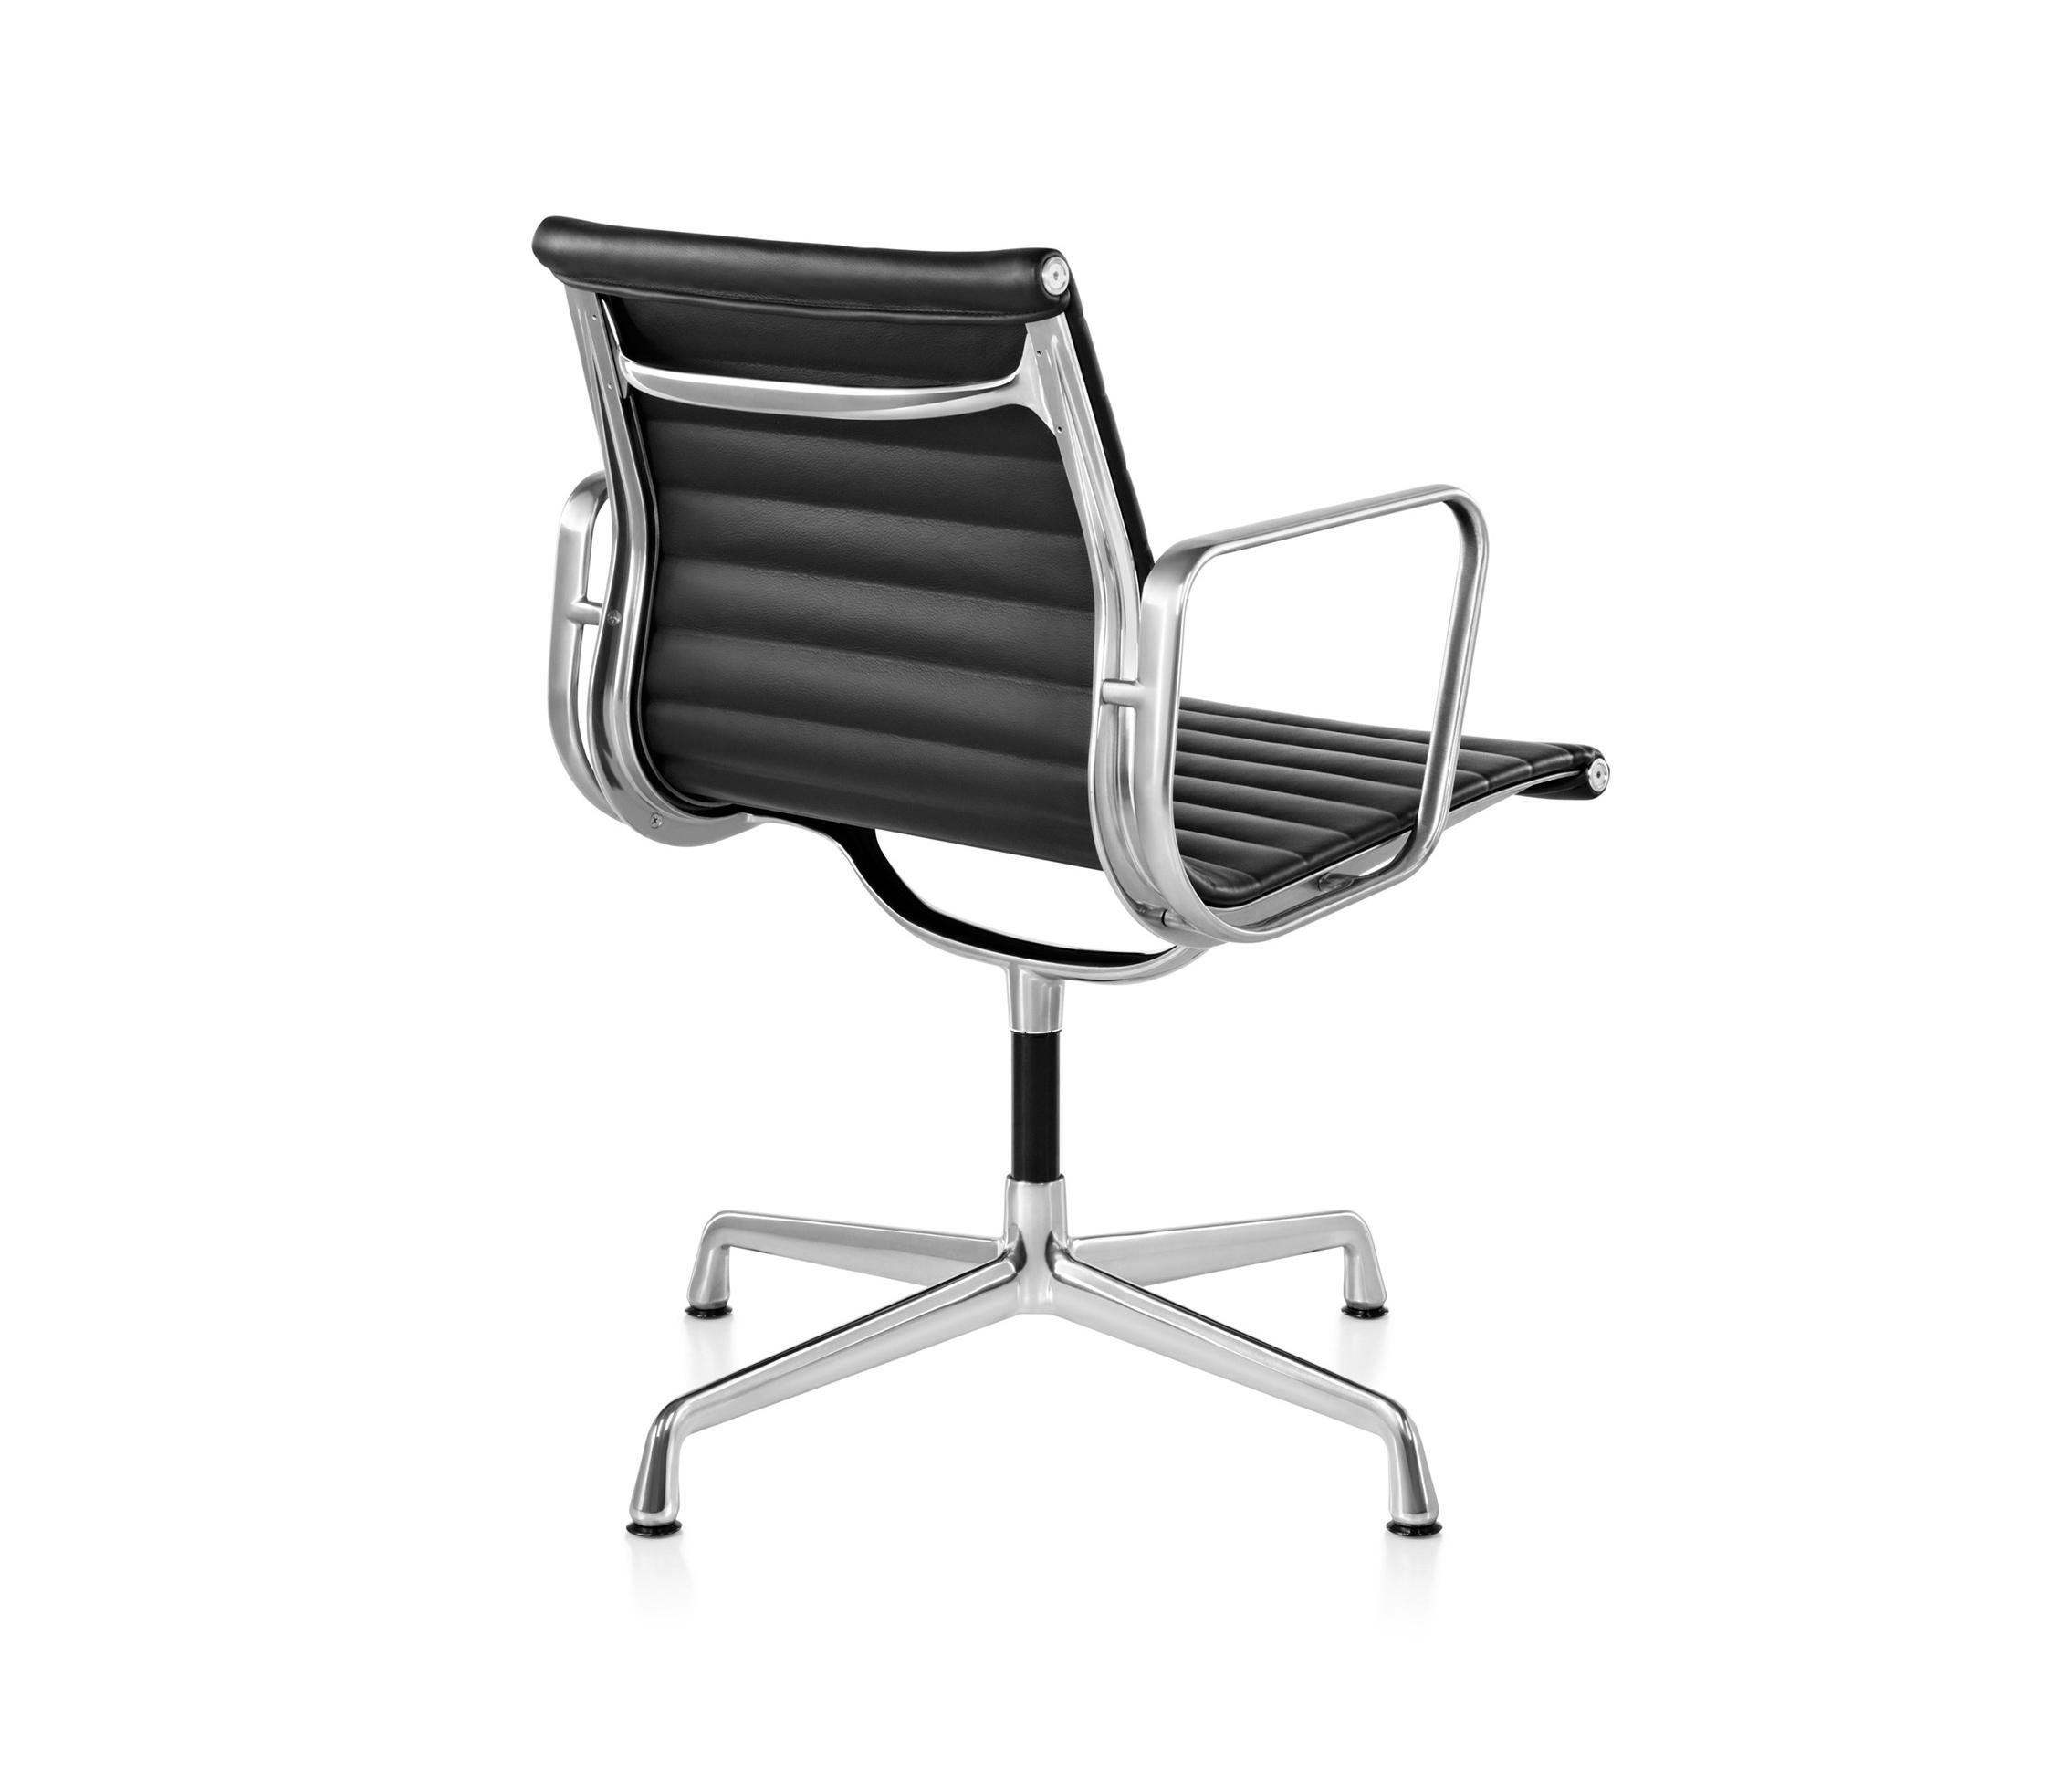 eames aluminum group side chair conference chairs from herman miller architonic. Black Bedroom Furniture Sets. Home Design Ideas